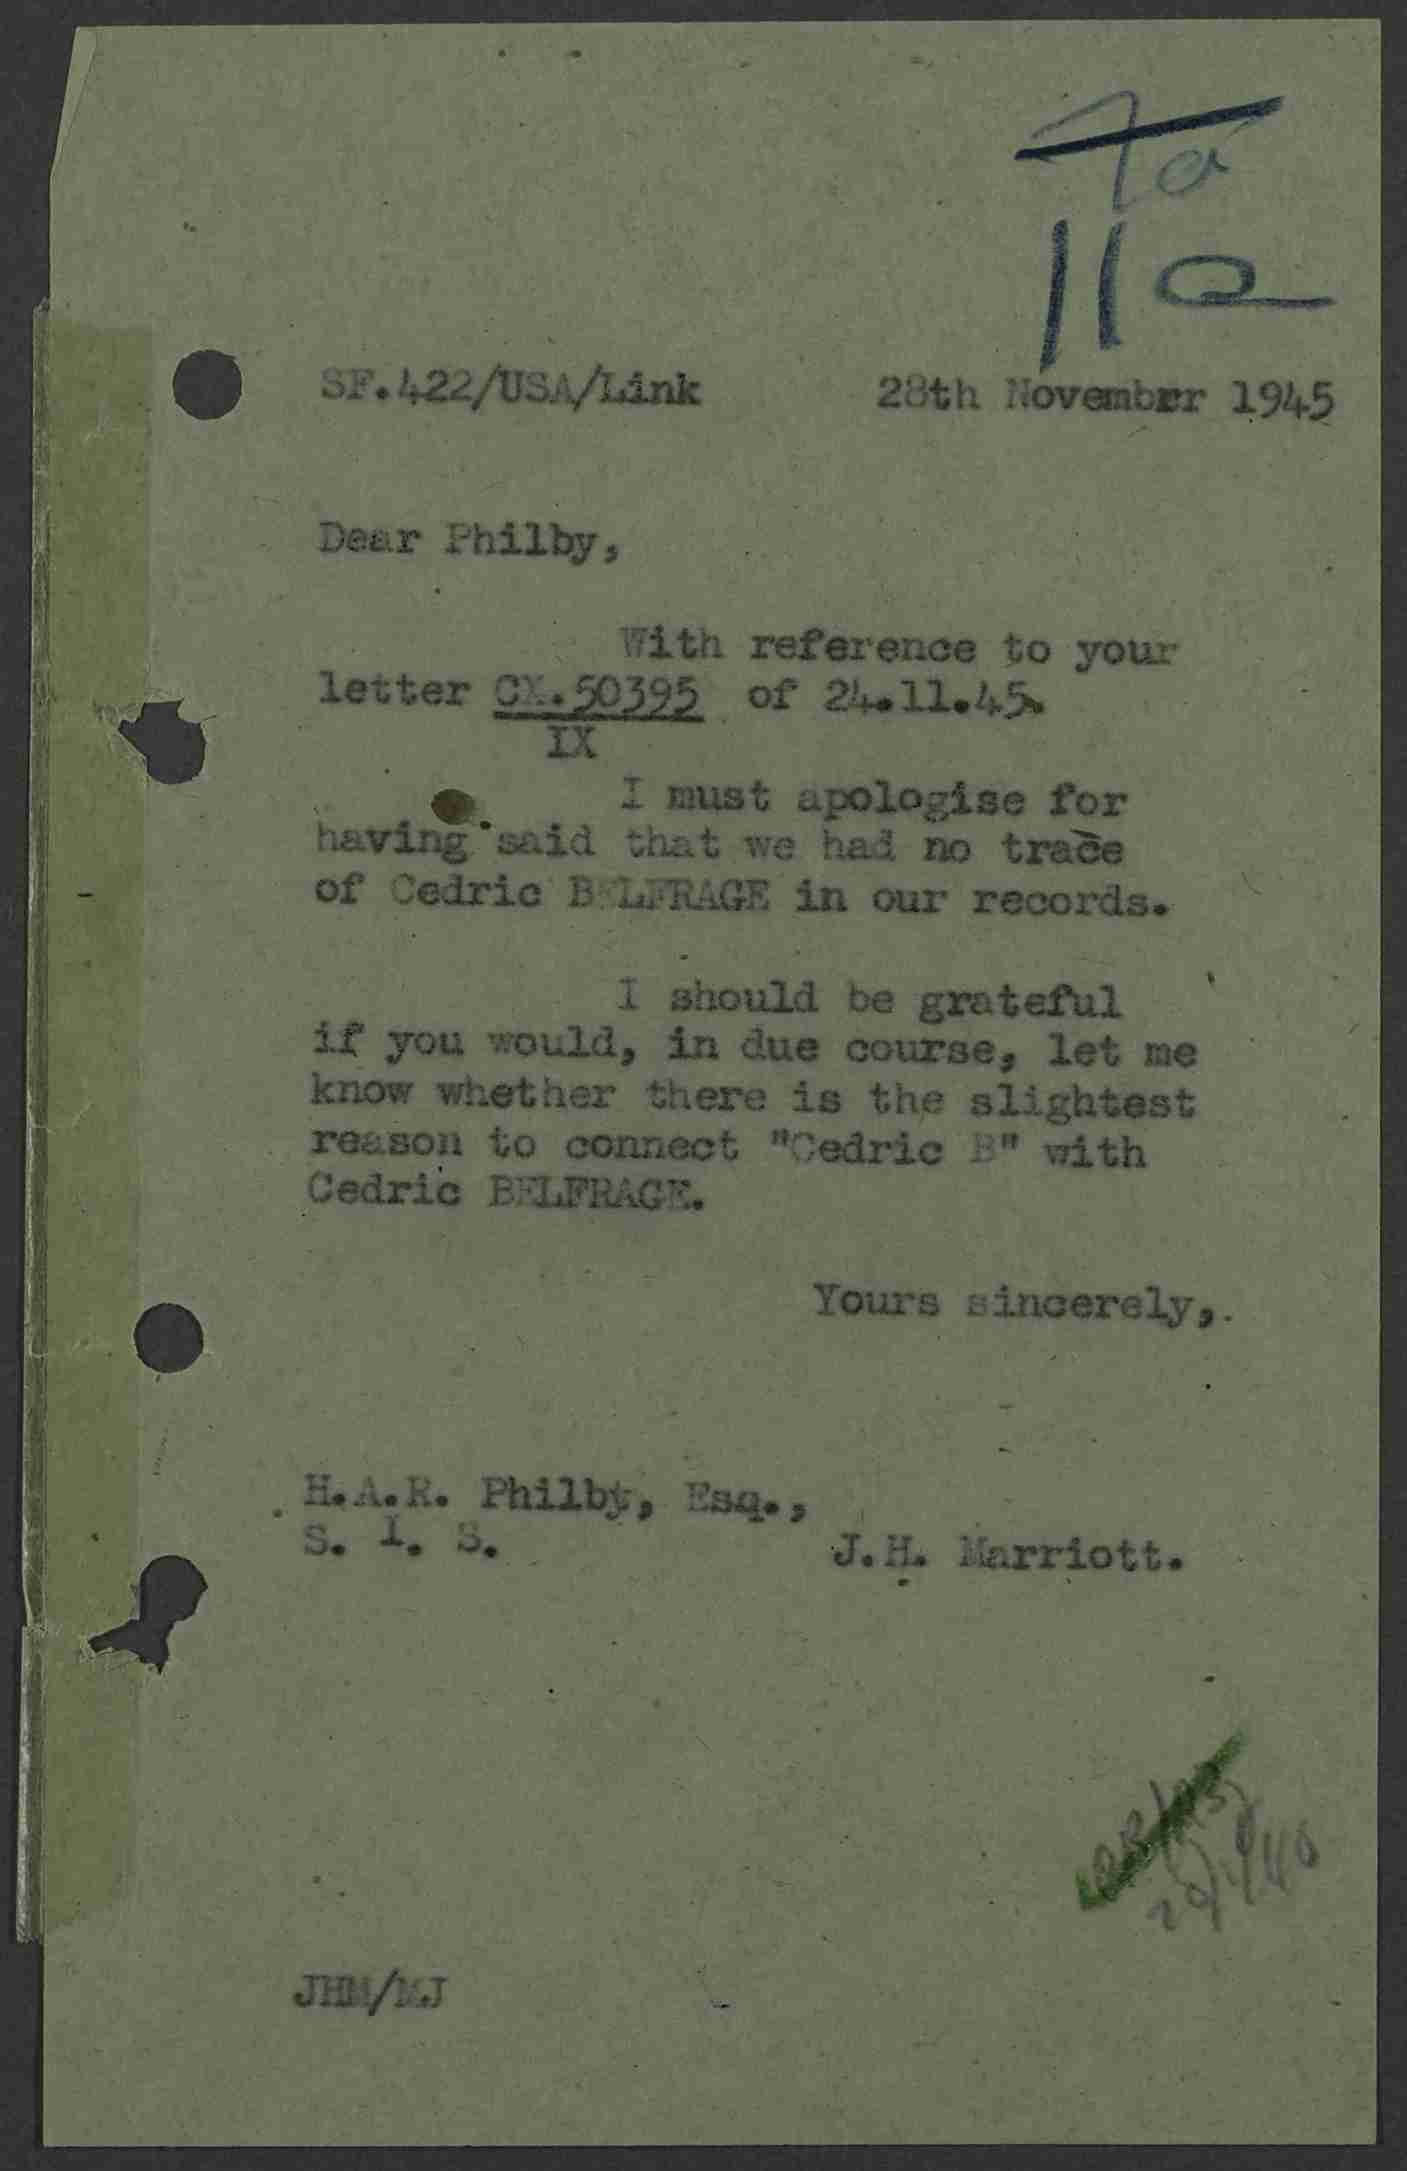 Letter to Philby